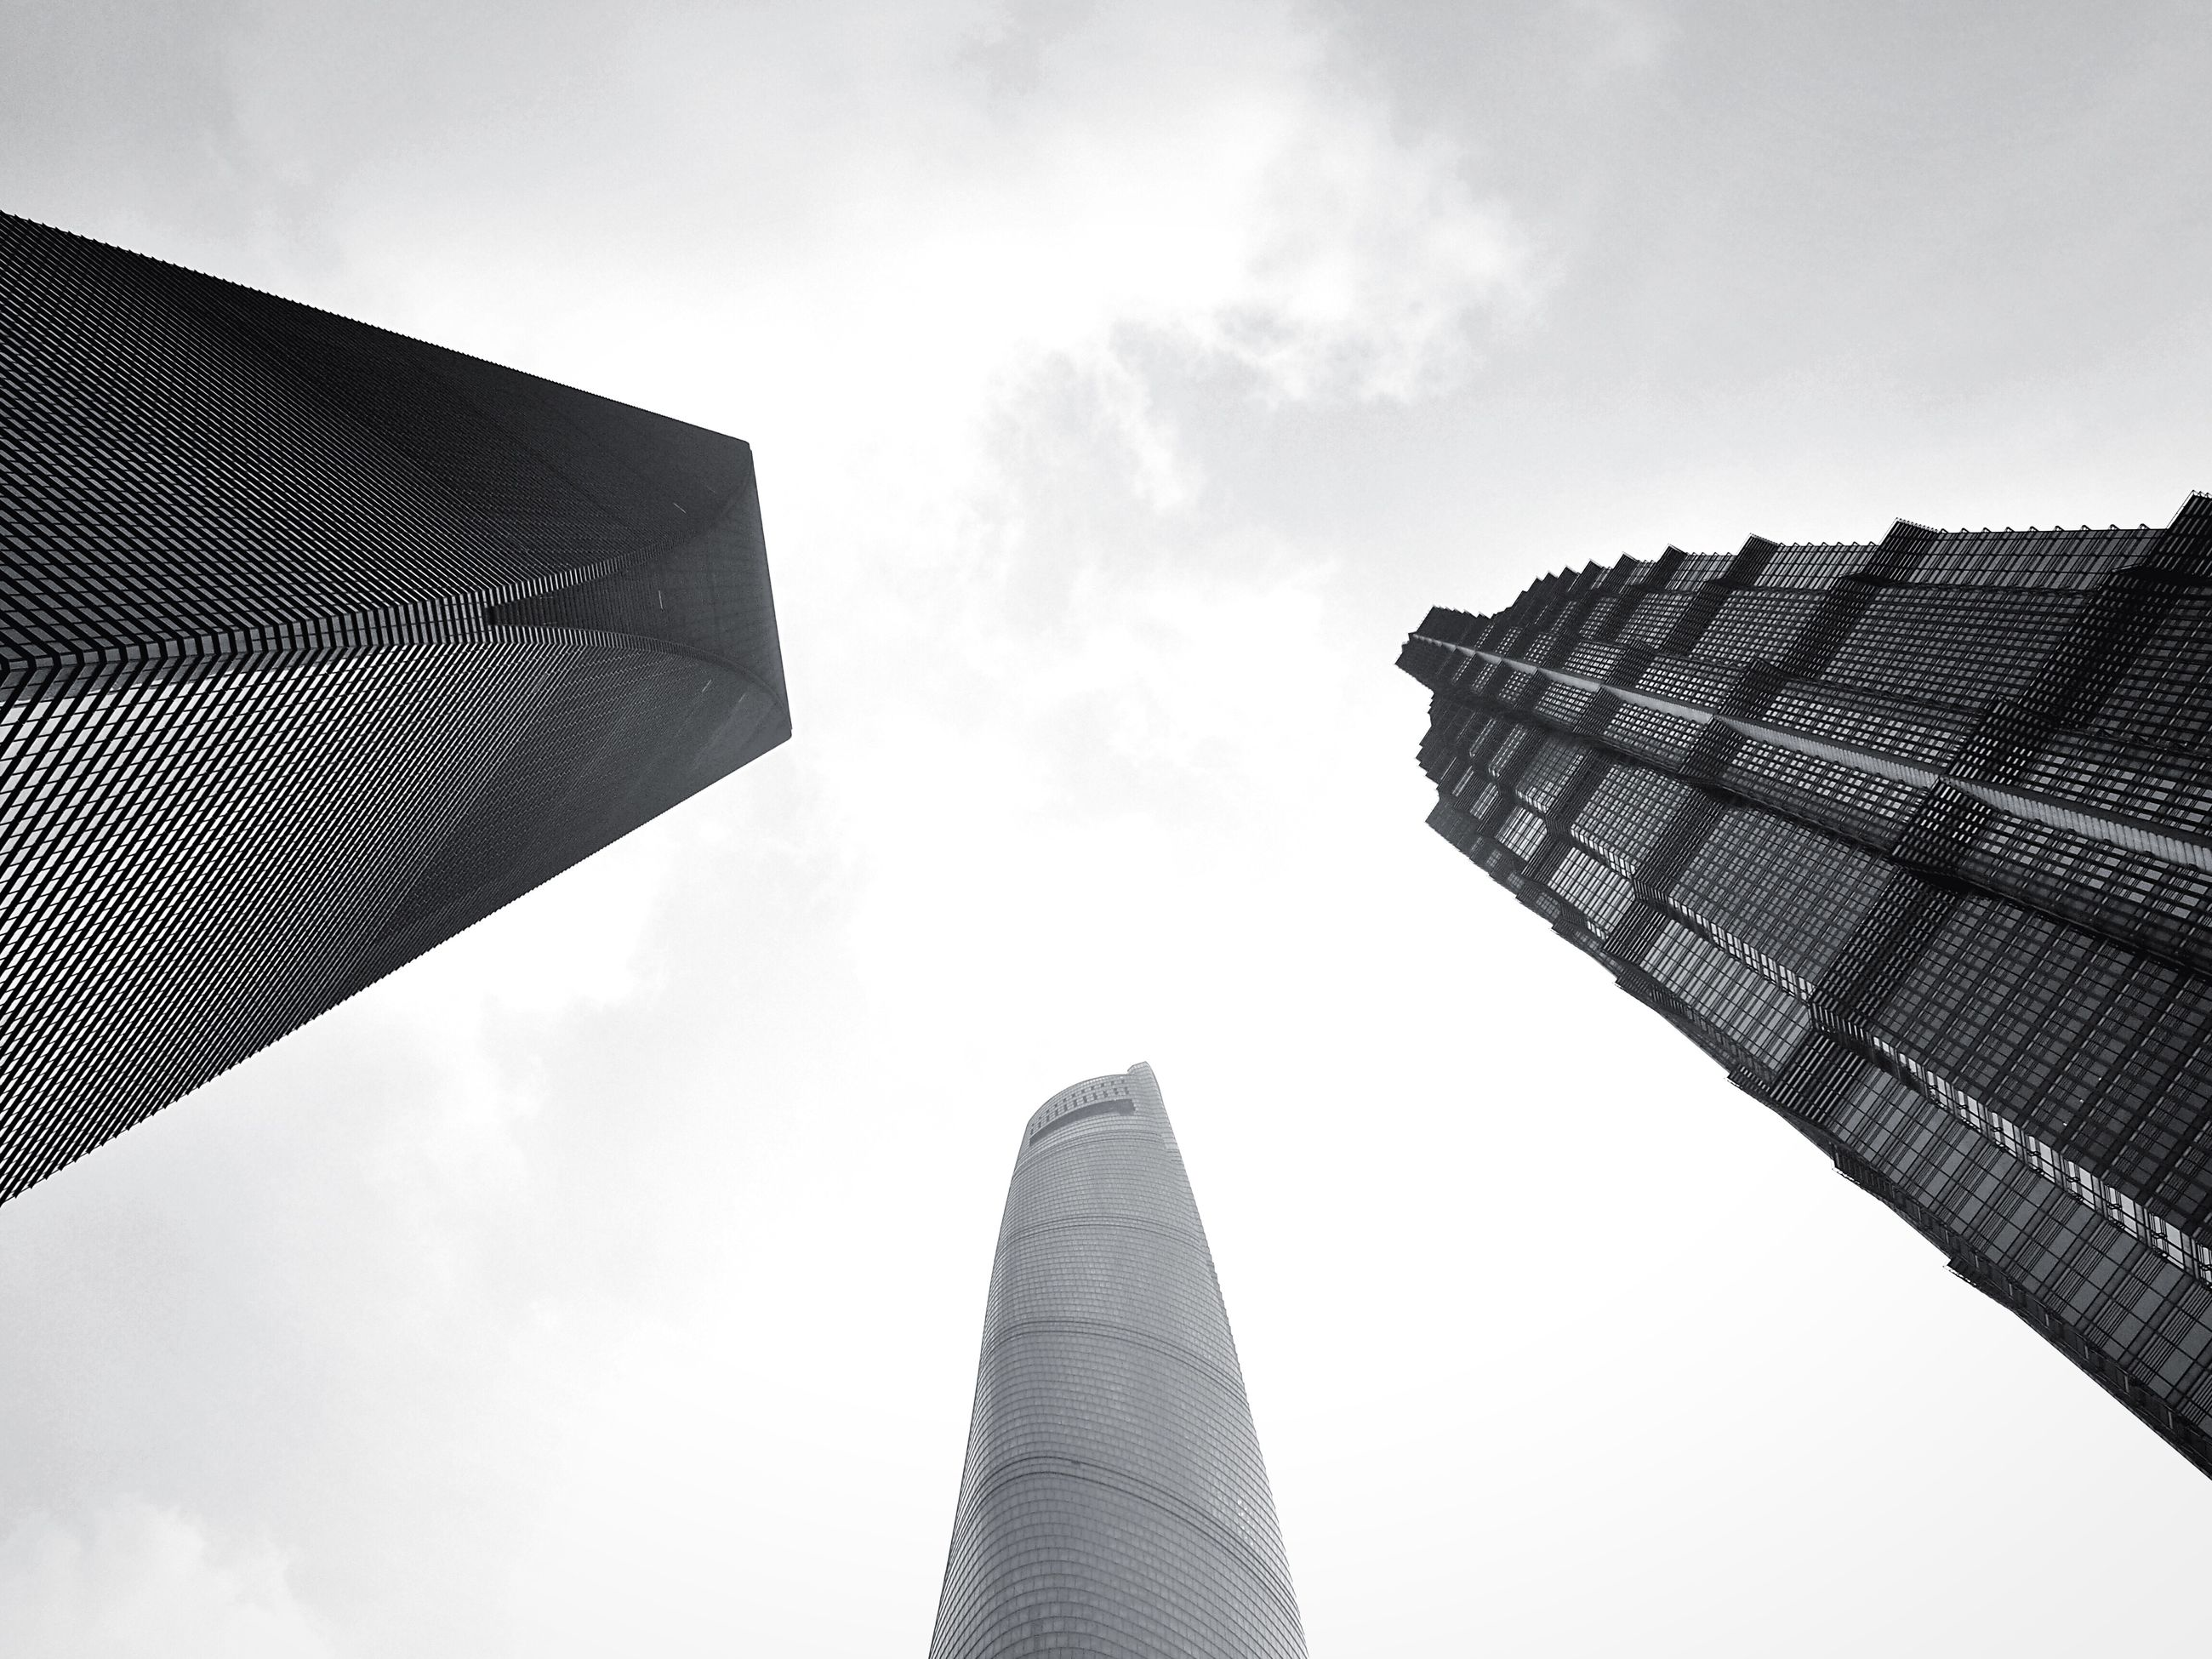 low angle view, architecture, building exterior, built structure, skyscraper, tall - high, modern, tower, office building, city, sky, tall, building, directly below, cloud - sky, day, outdoors, glass - material, no people, architectural feature